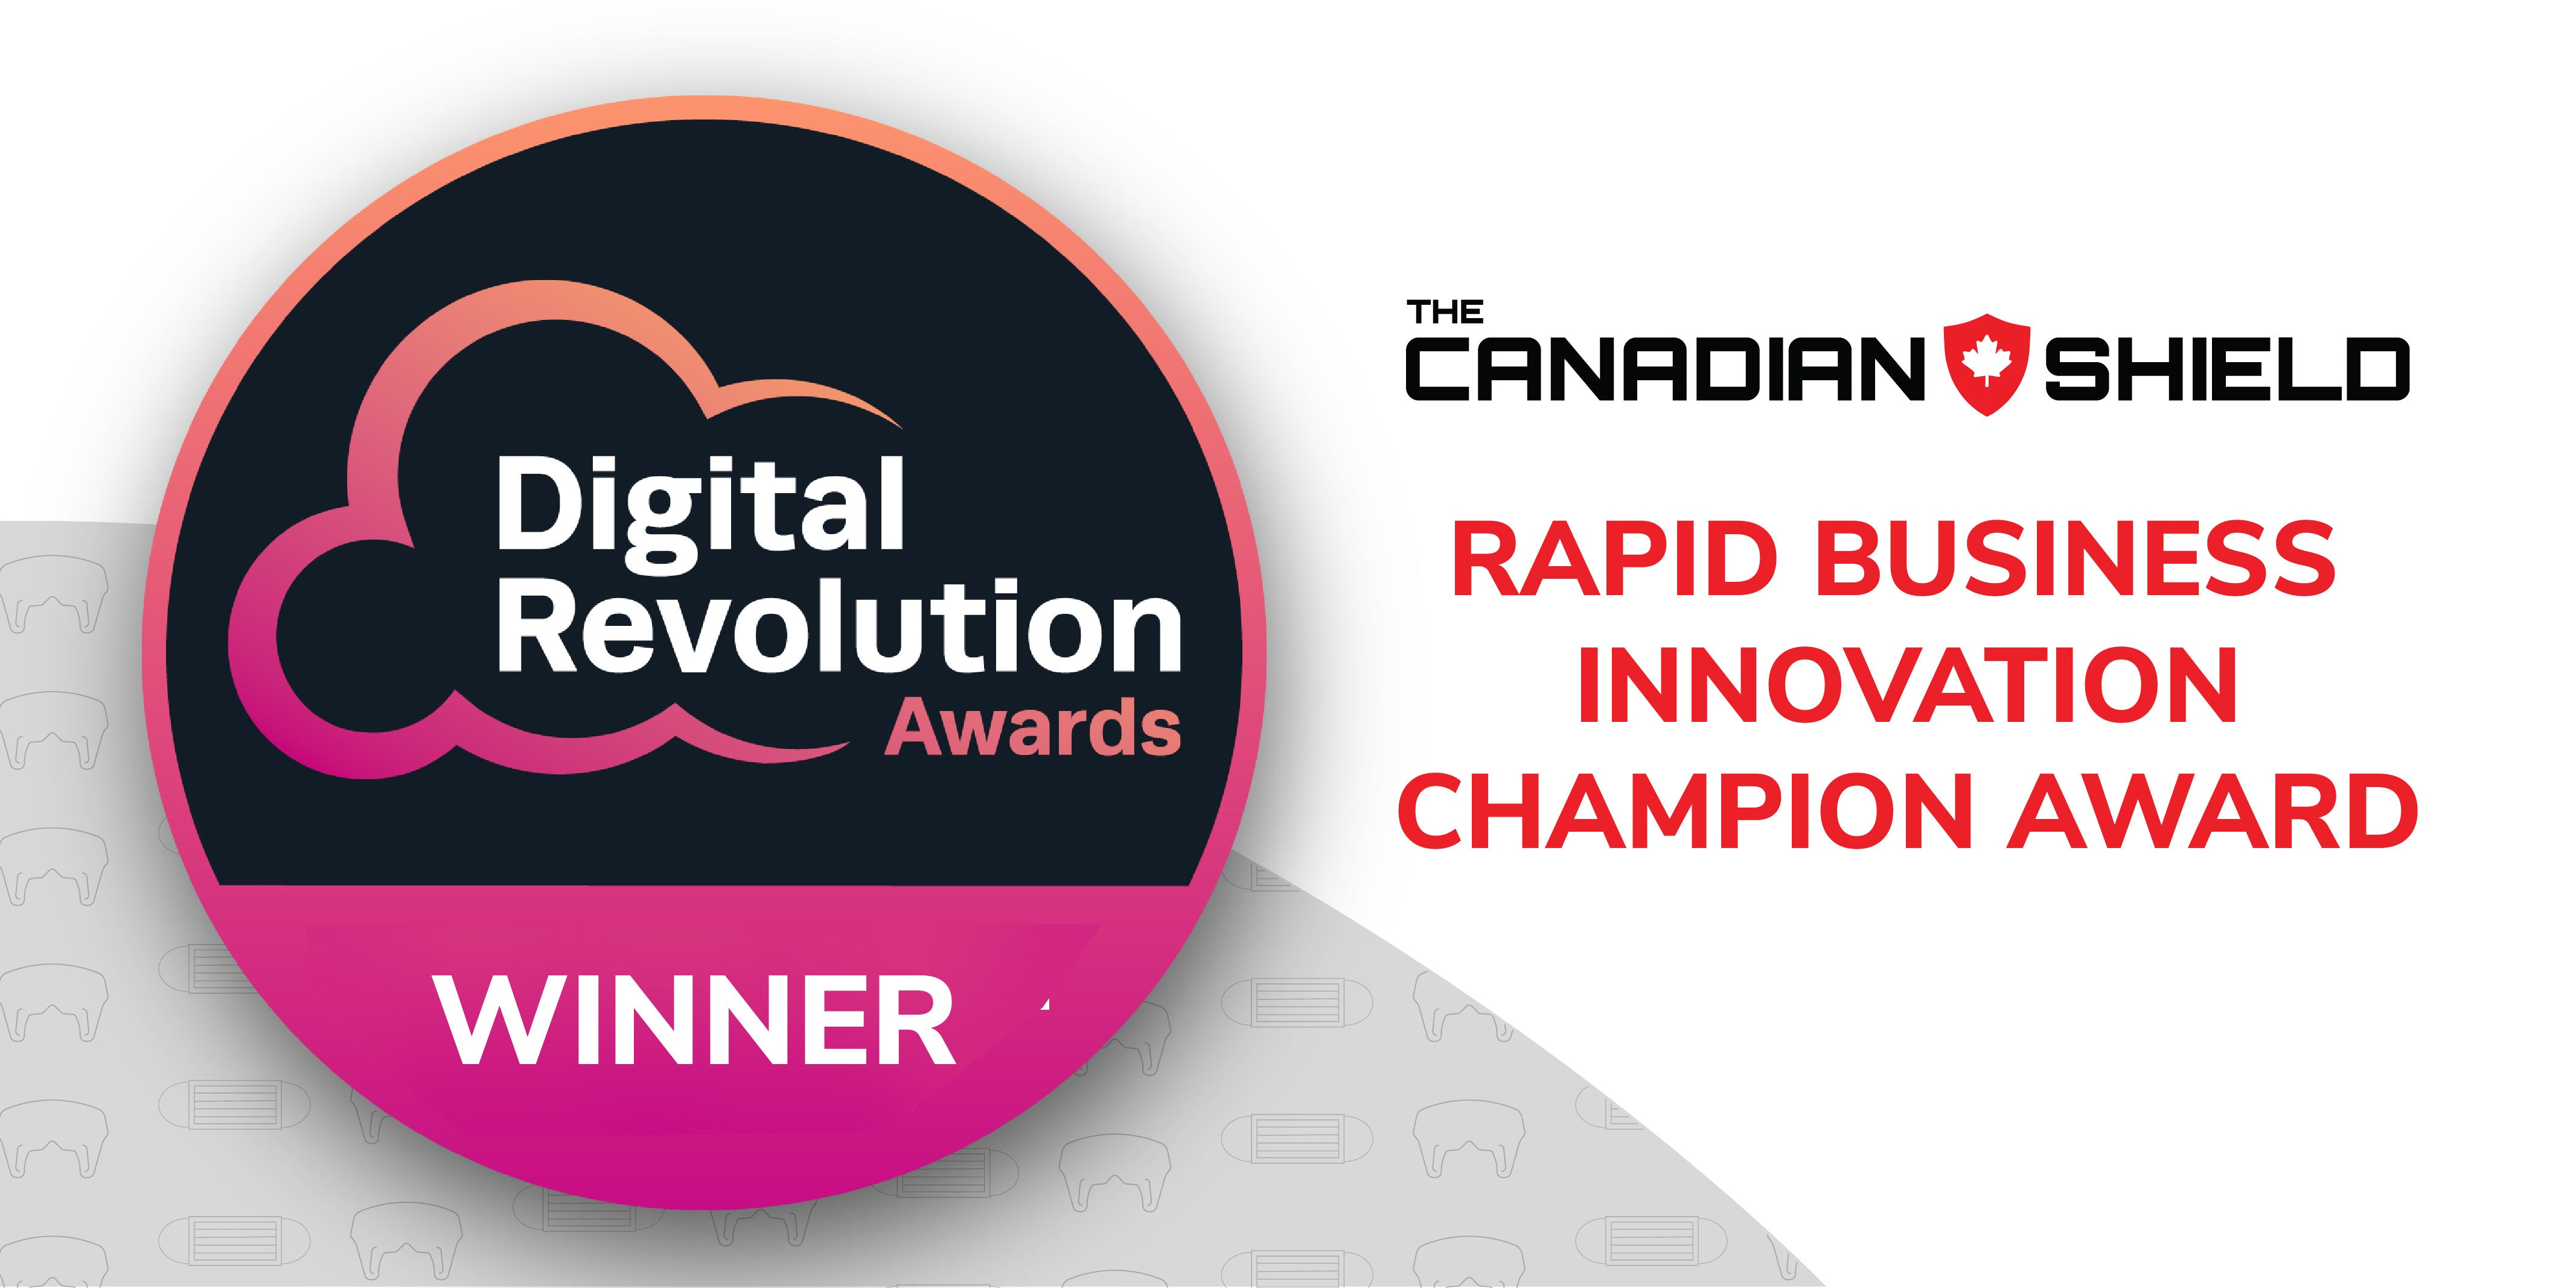 the canadian shield rapid business innovation champion award